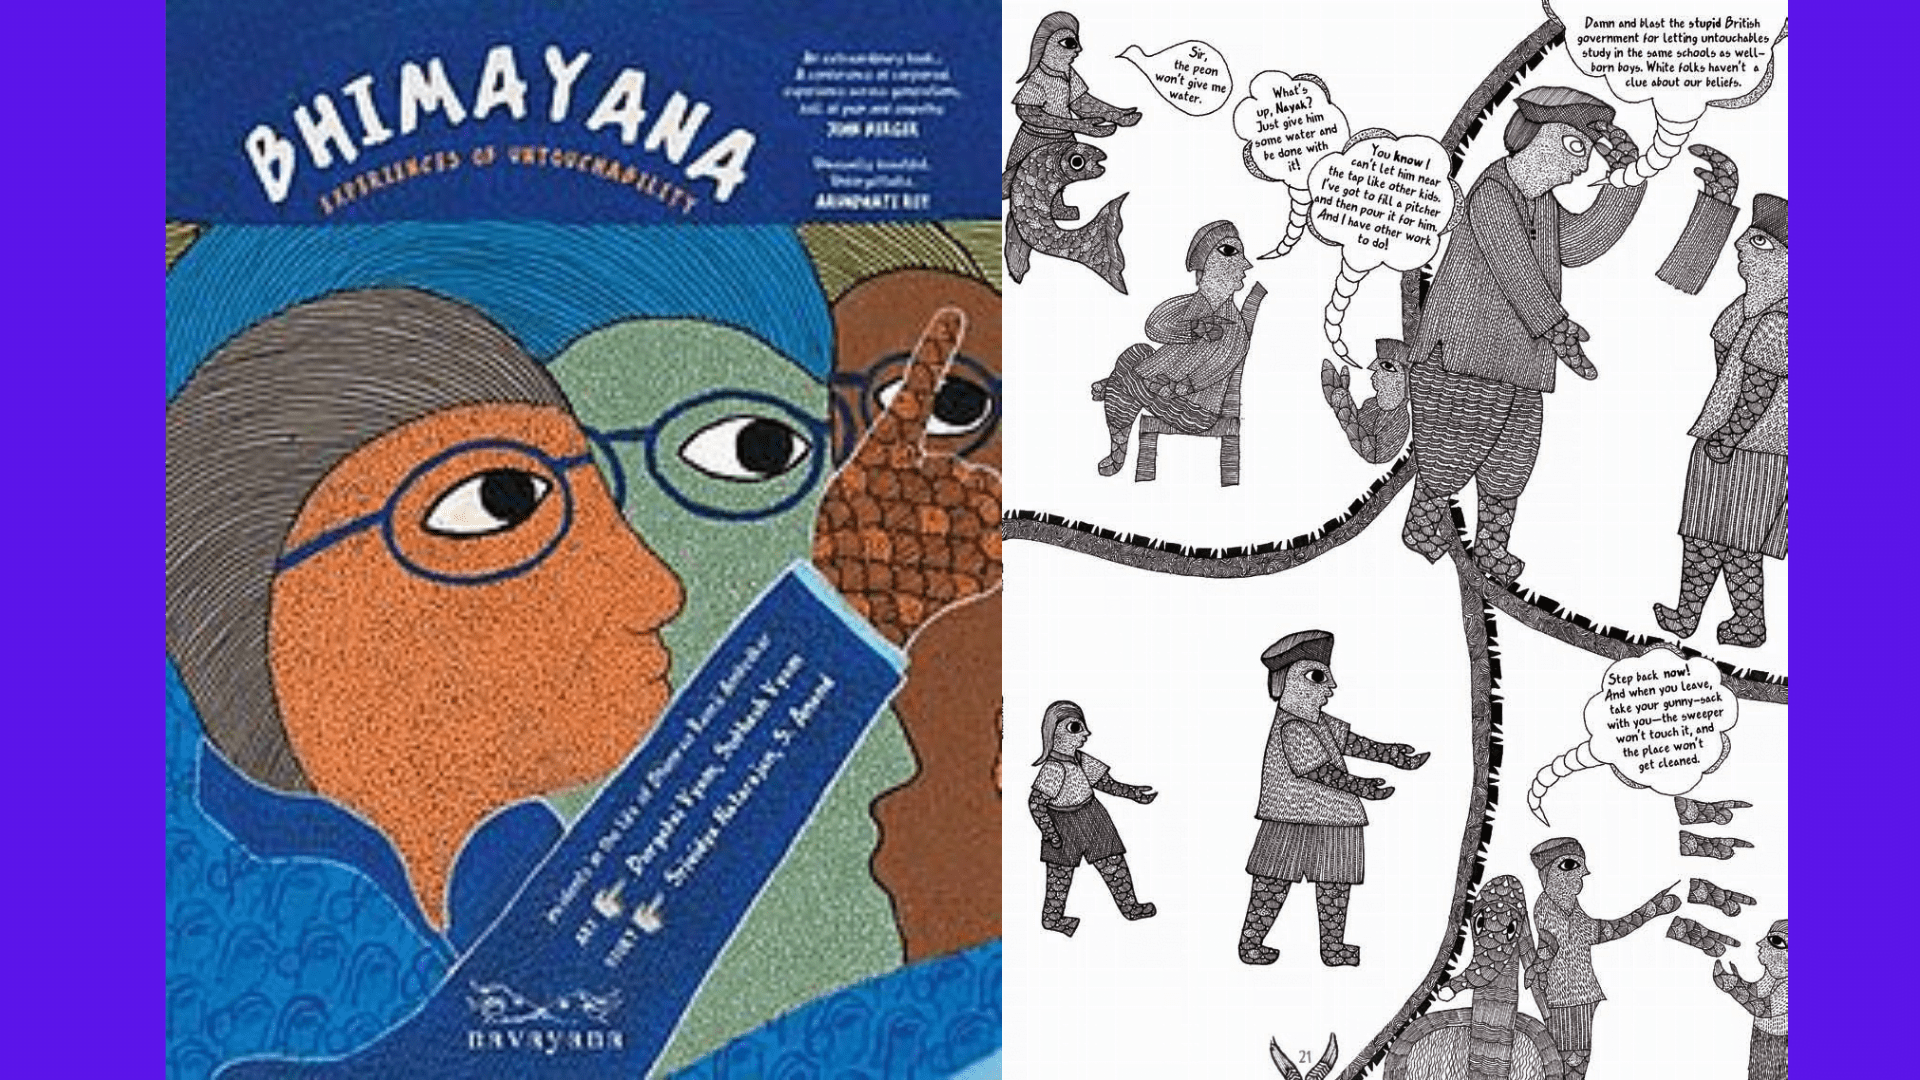 Bhimayana: A Tongue-In-Cheek Graphic Novel Confronting Our Caste-Bias